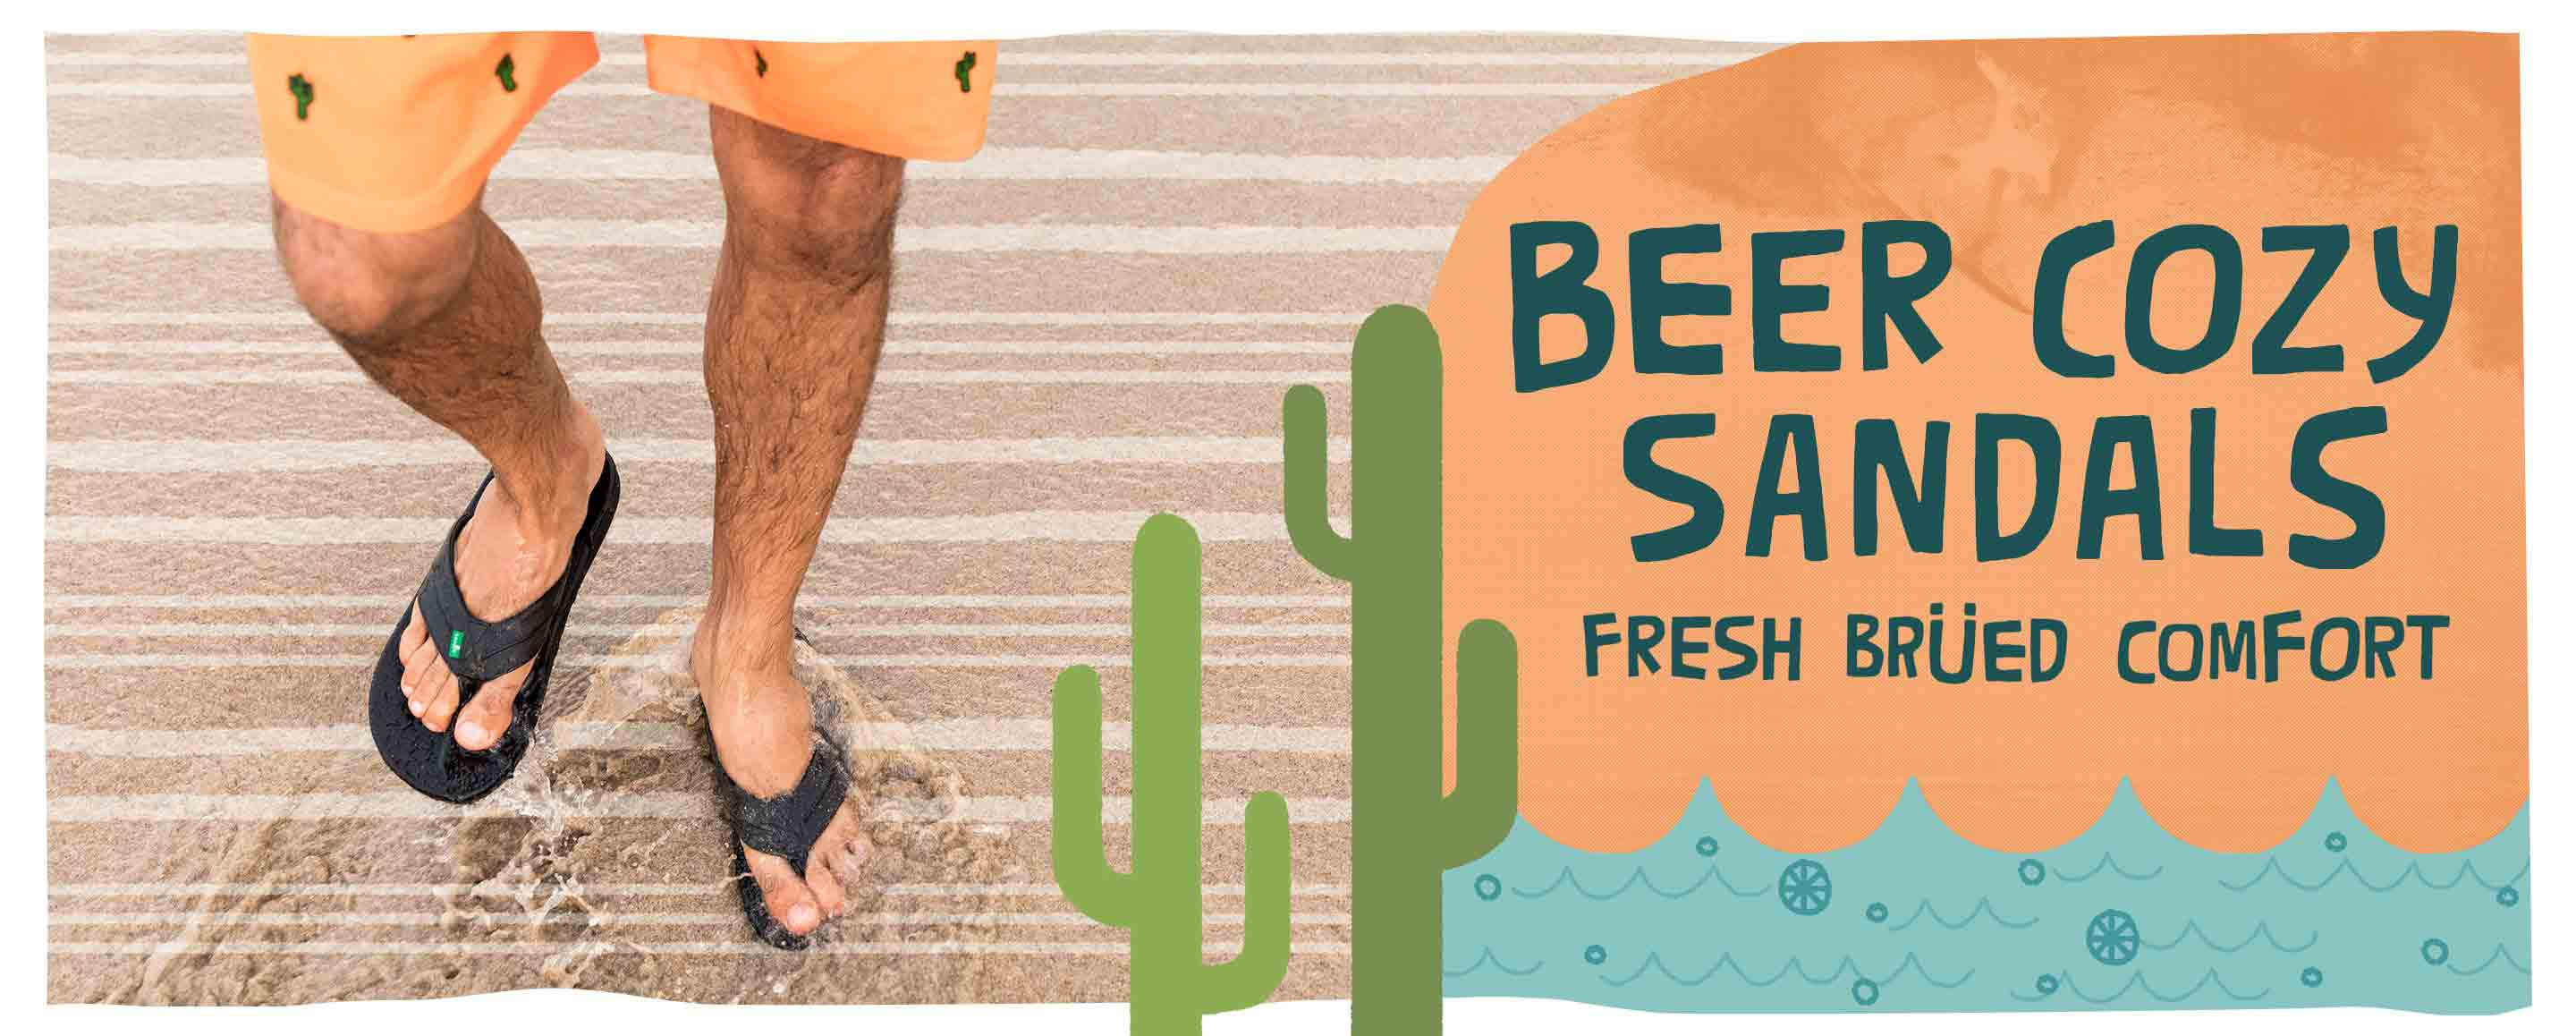 Beer Cozy Sandals - Fresh Brued Comfort